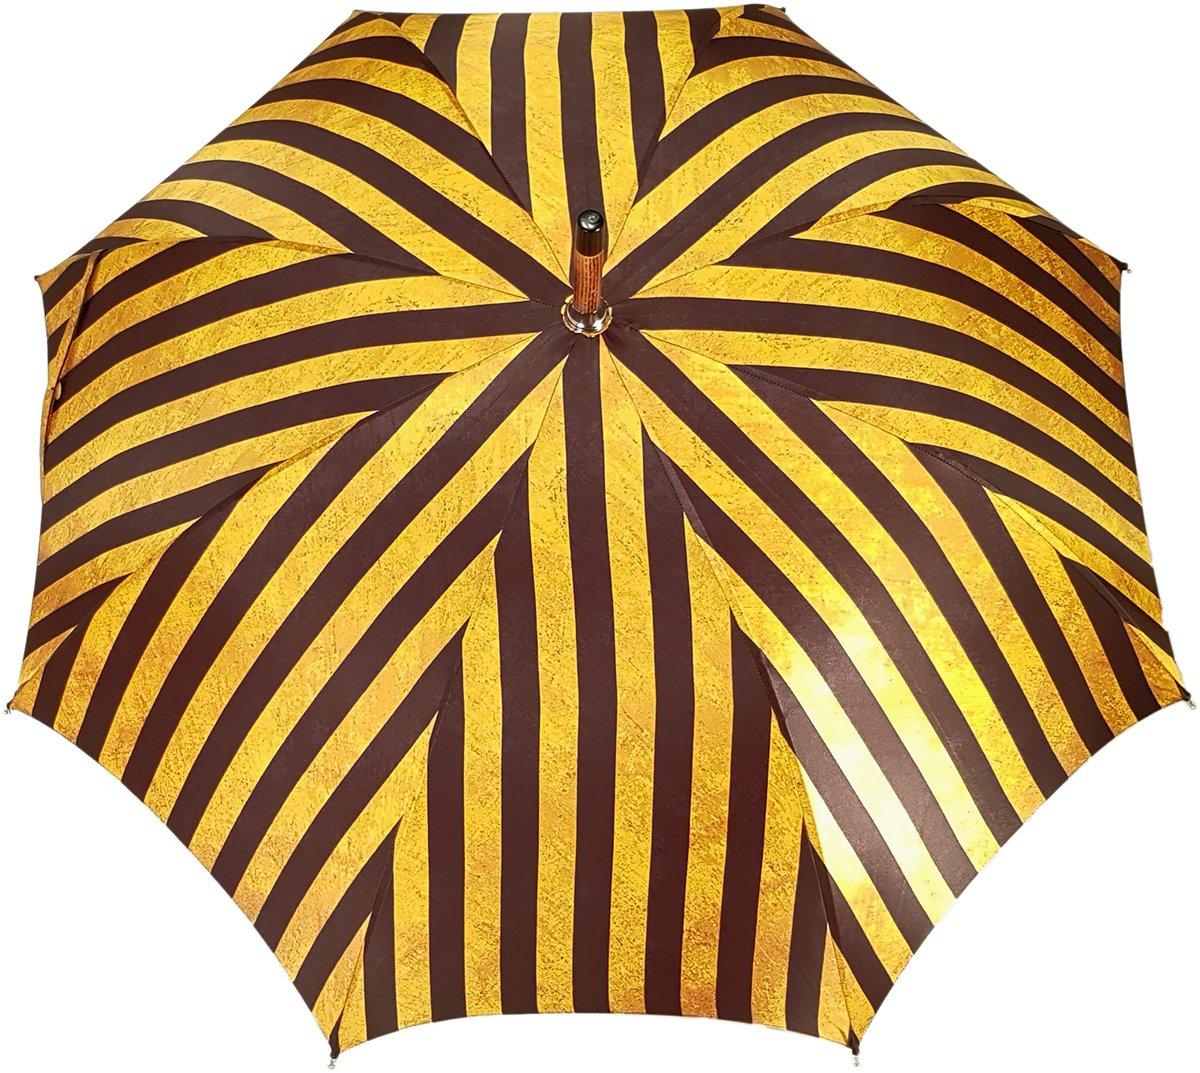 HANDCRAFTED GENTLEMEN ITALIAN UMBRELLA